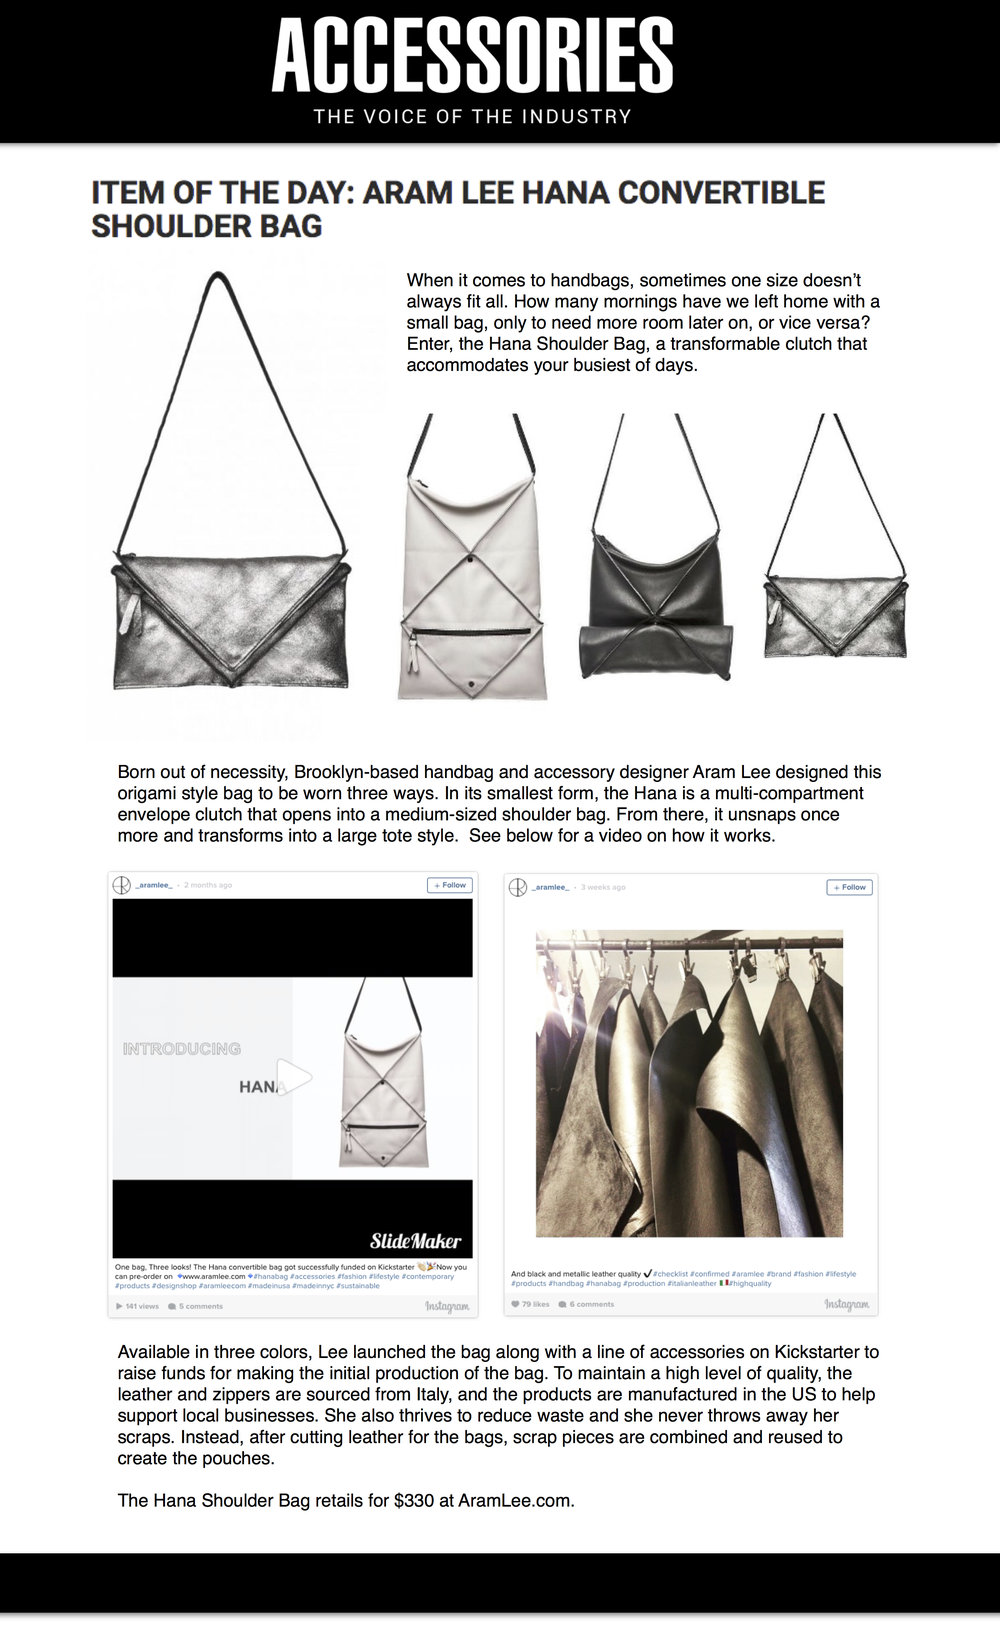 Hana Convertible Bag - ACCESSORIES MAGAZINE